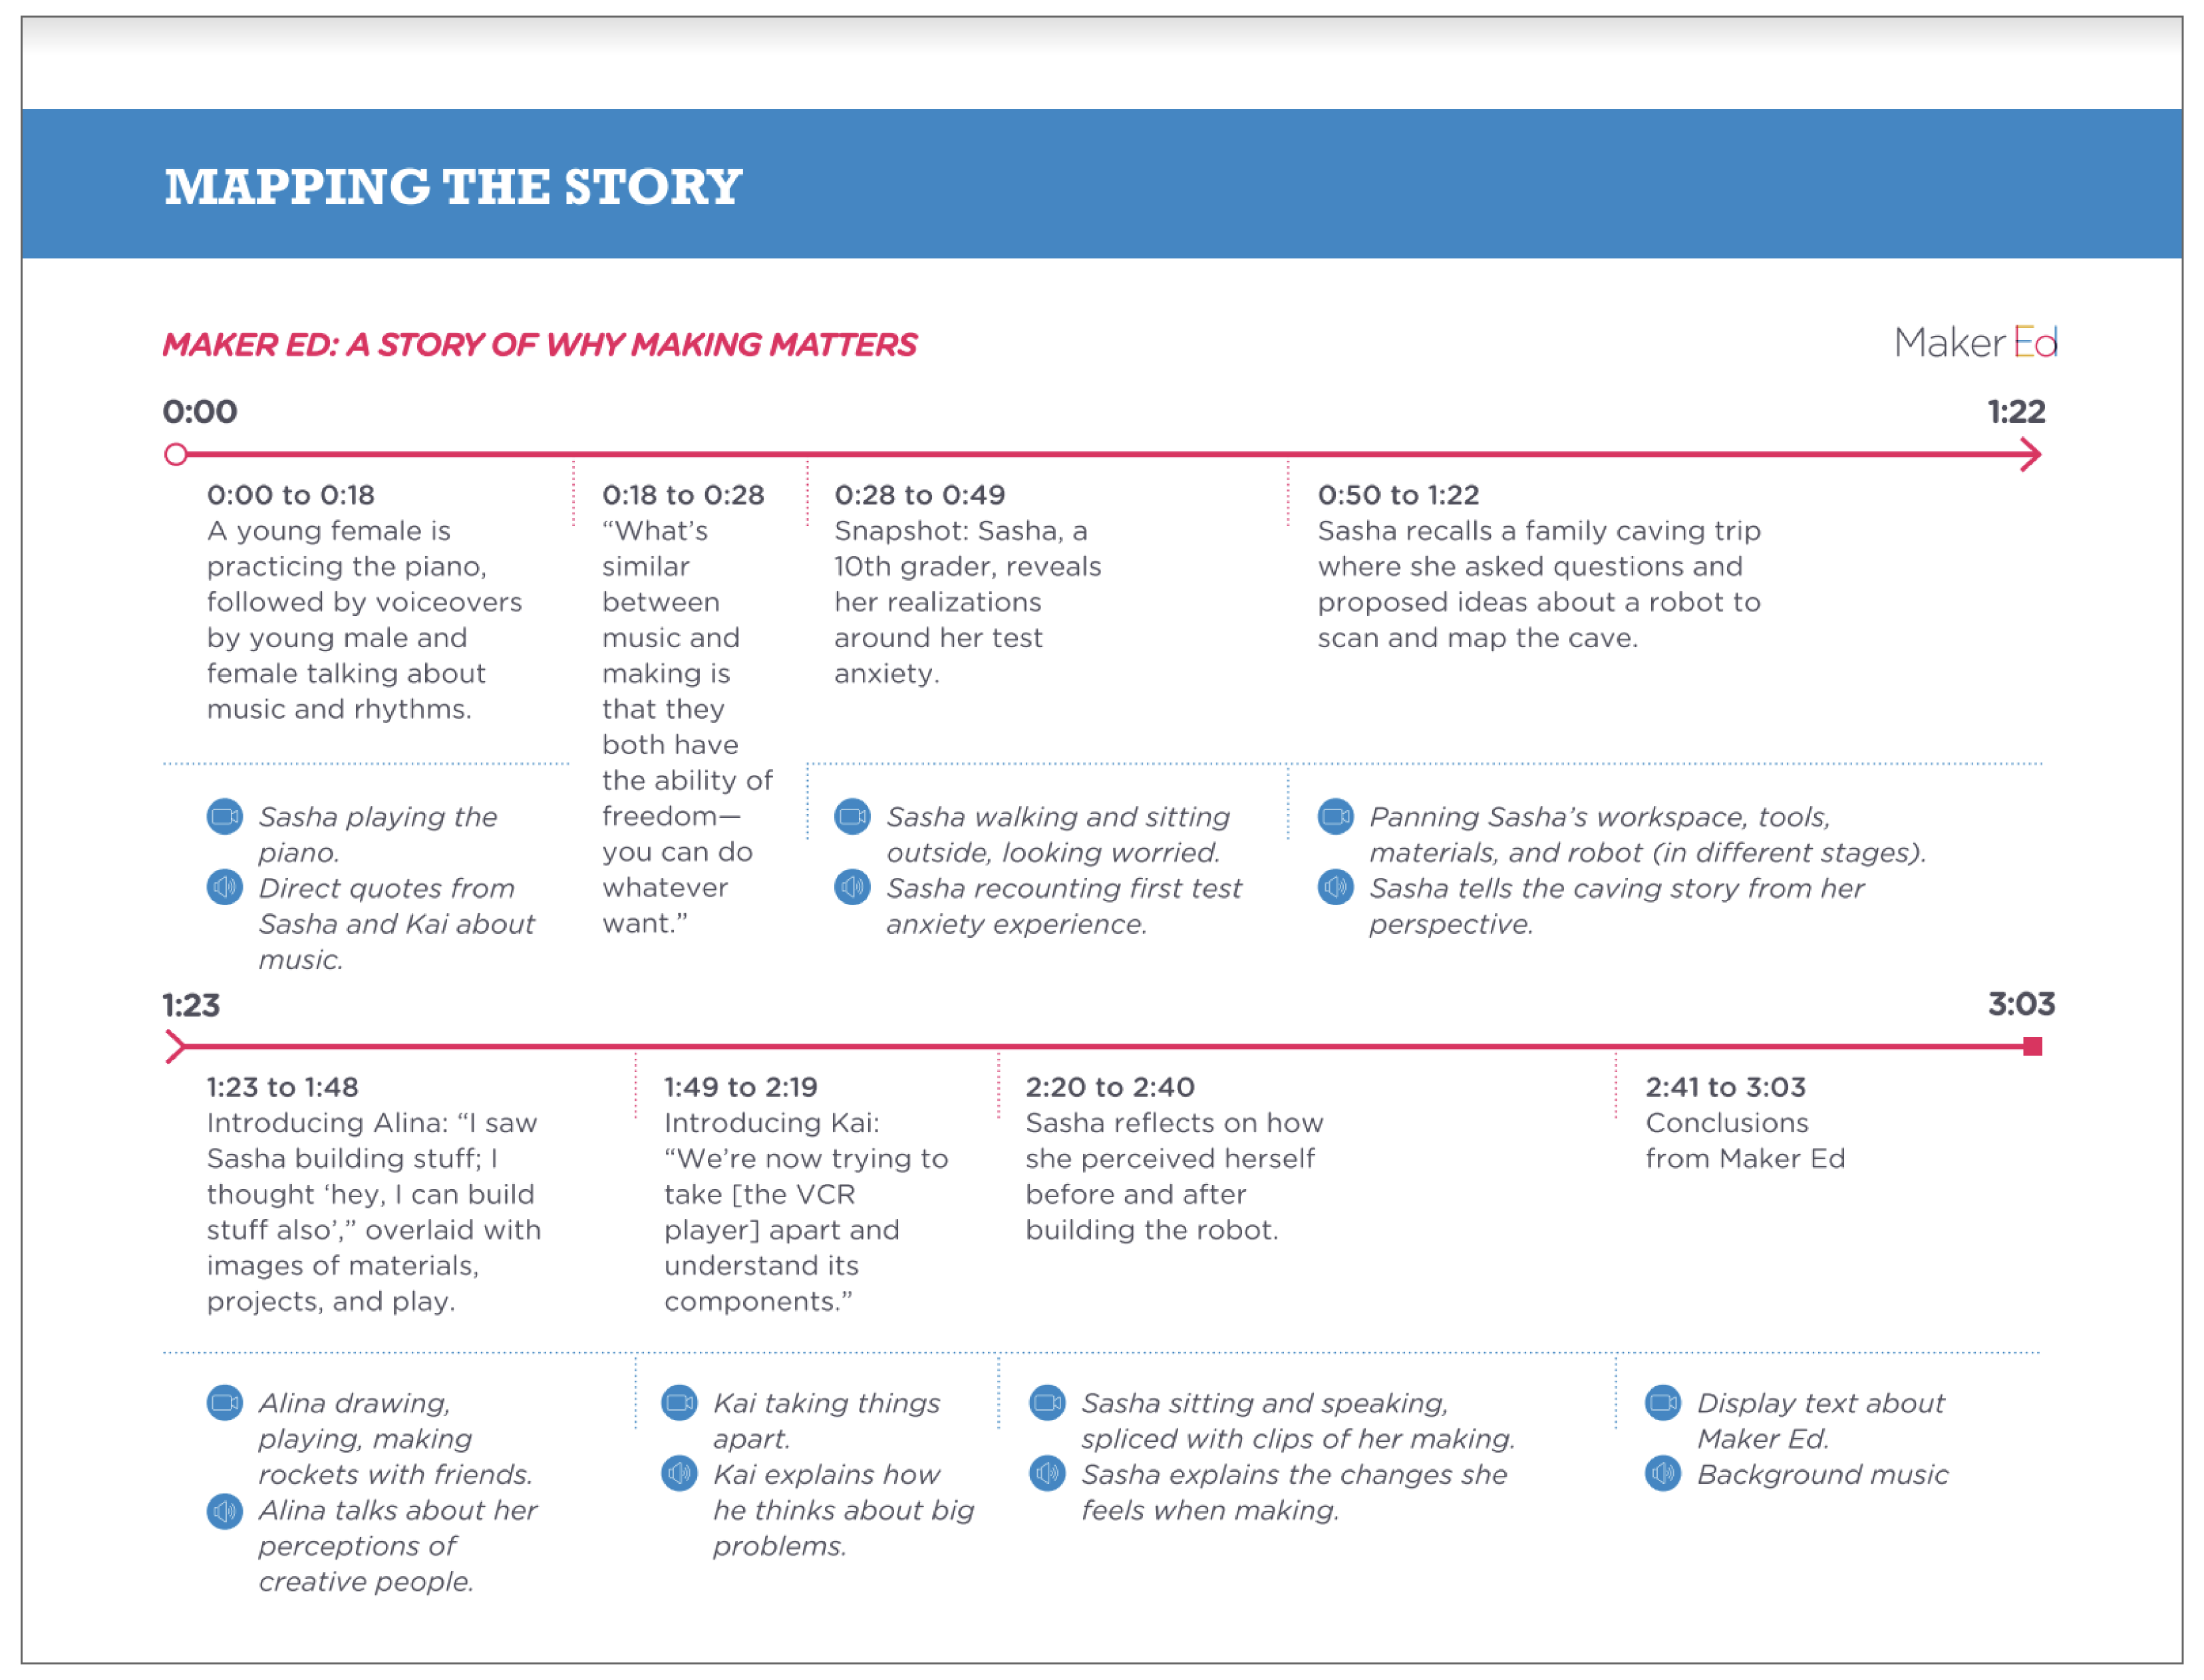 Making the Case: Capturing Your Story